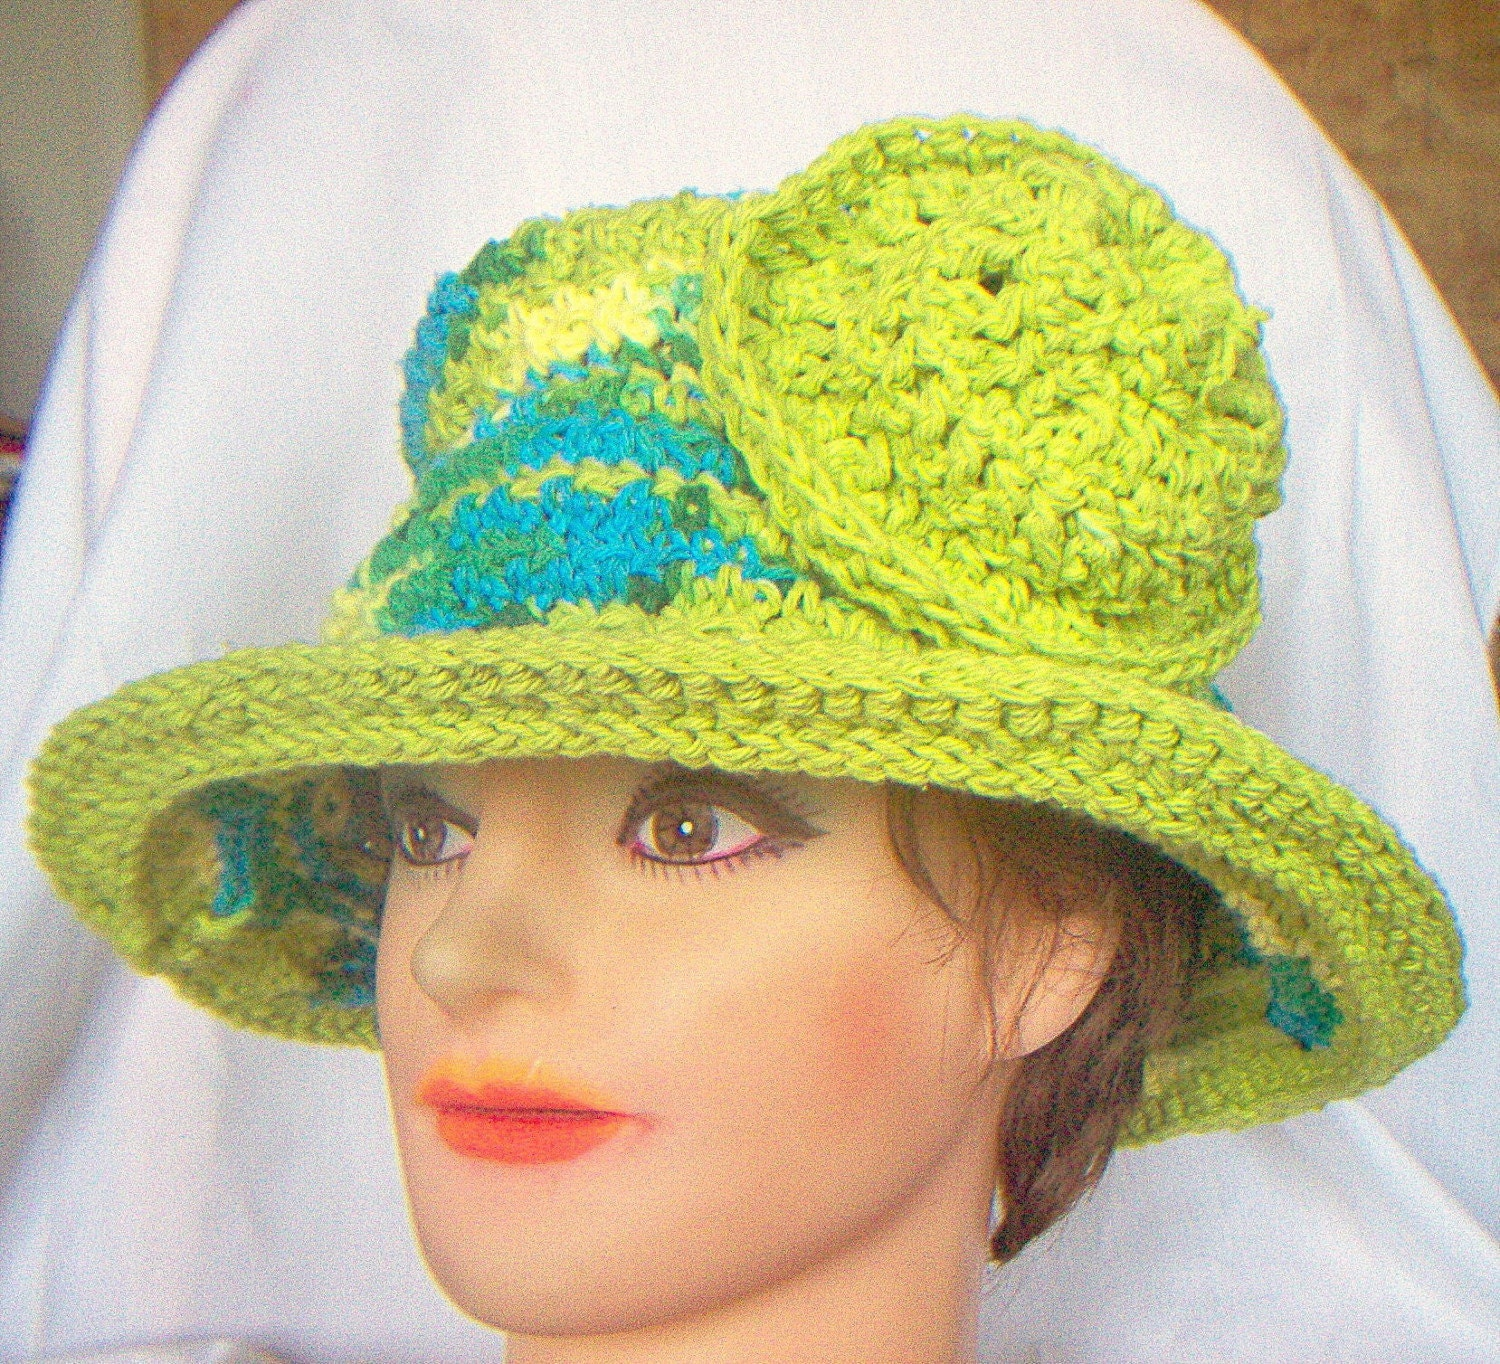 Brim Hat in Green Cotton Yarn by strawberrycouture on Etsy from etsy.com